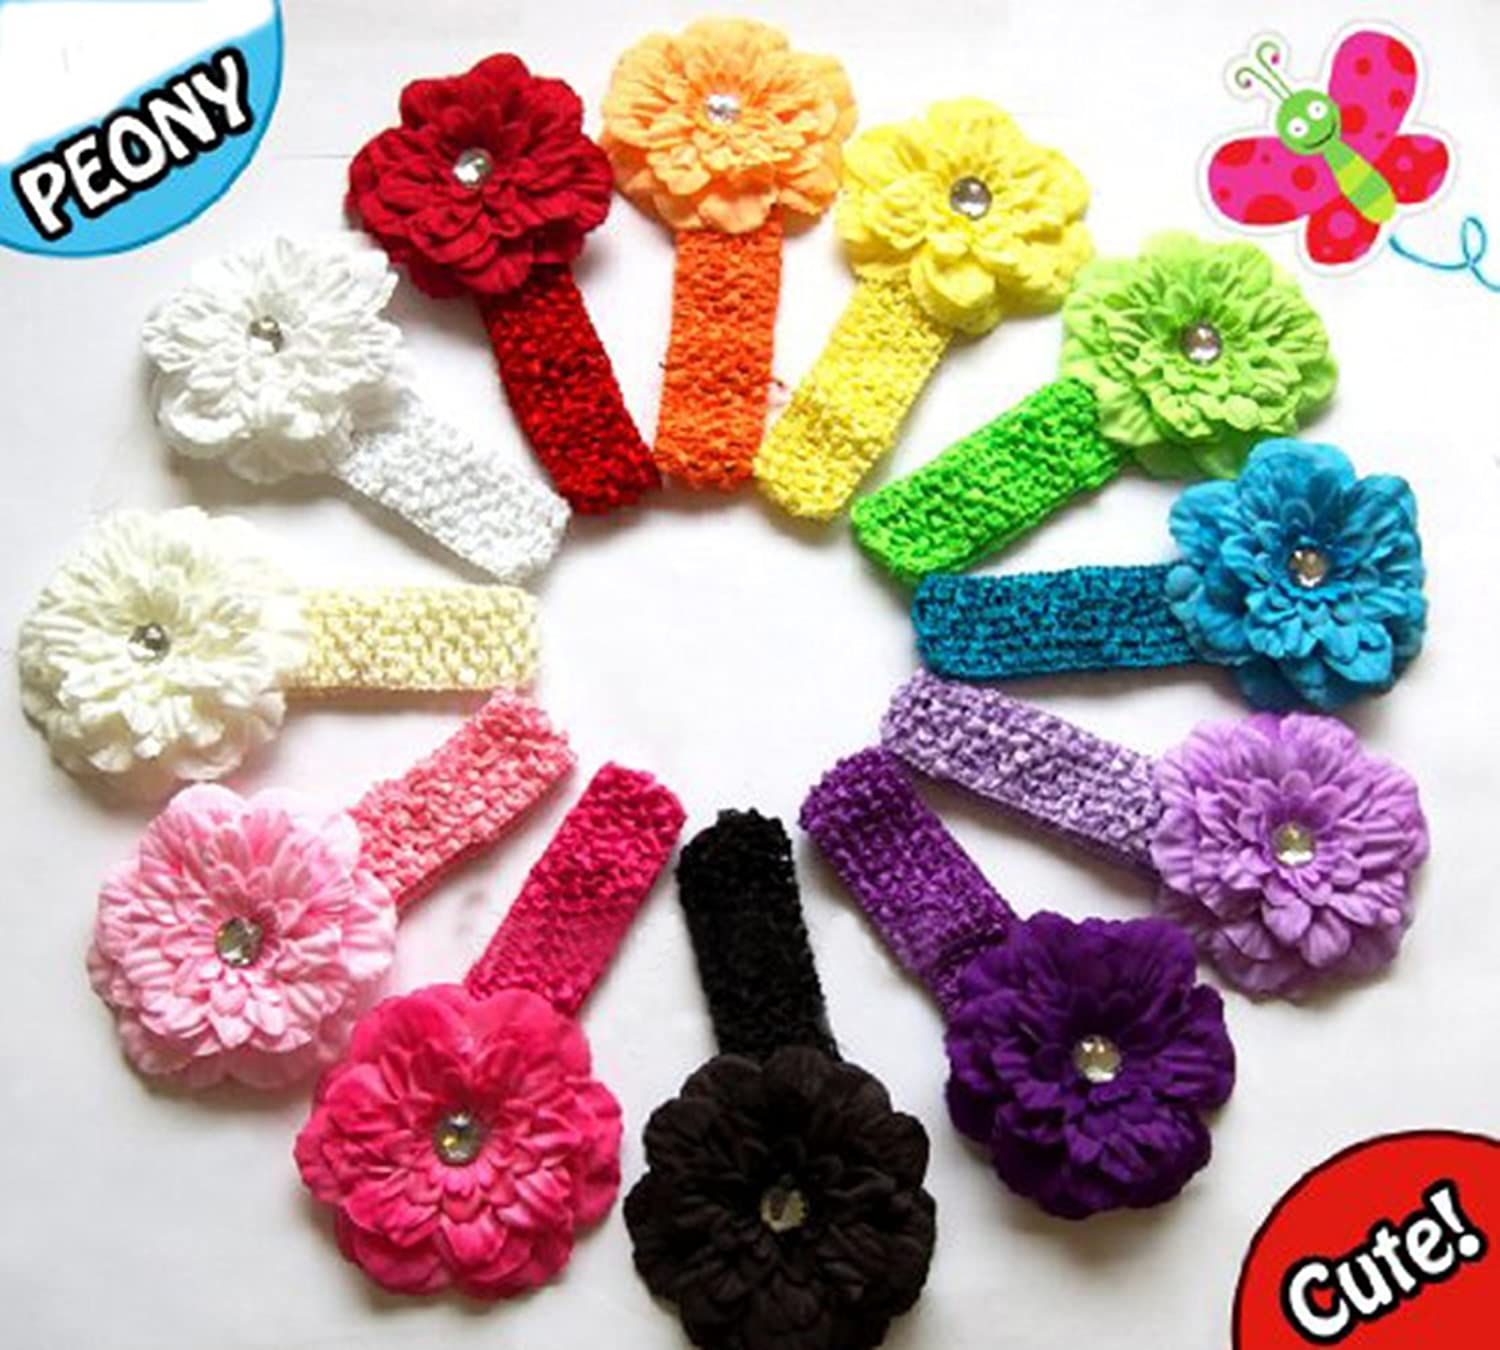 Beautiful baby hair accessories - Peony Flower Hair Clips With Crochet Headbands For Baby Toddler Youth Girls Amazon Co Uk Clothing